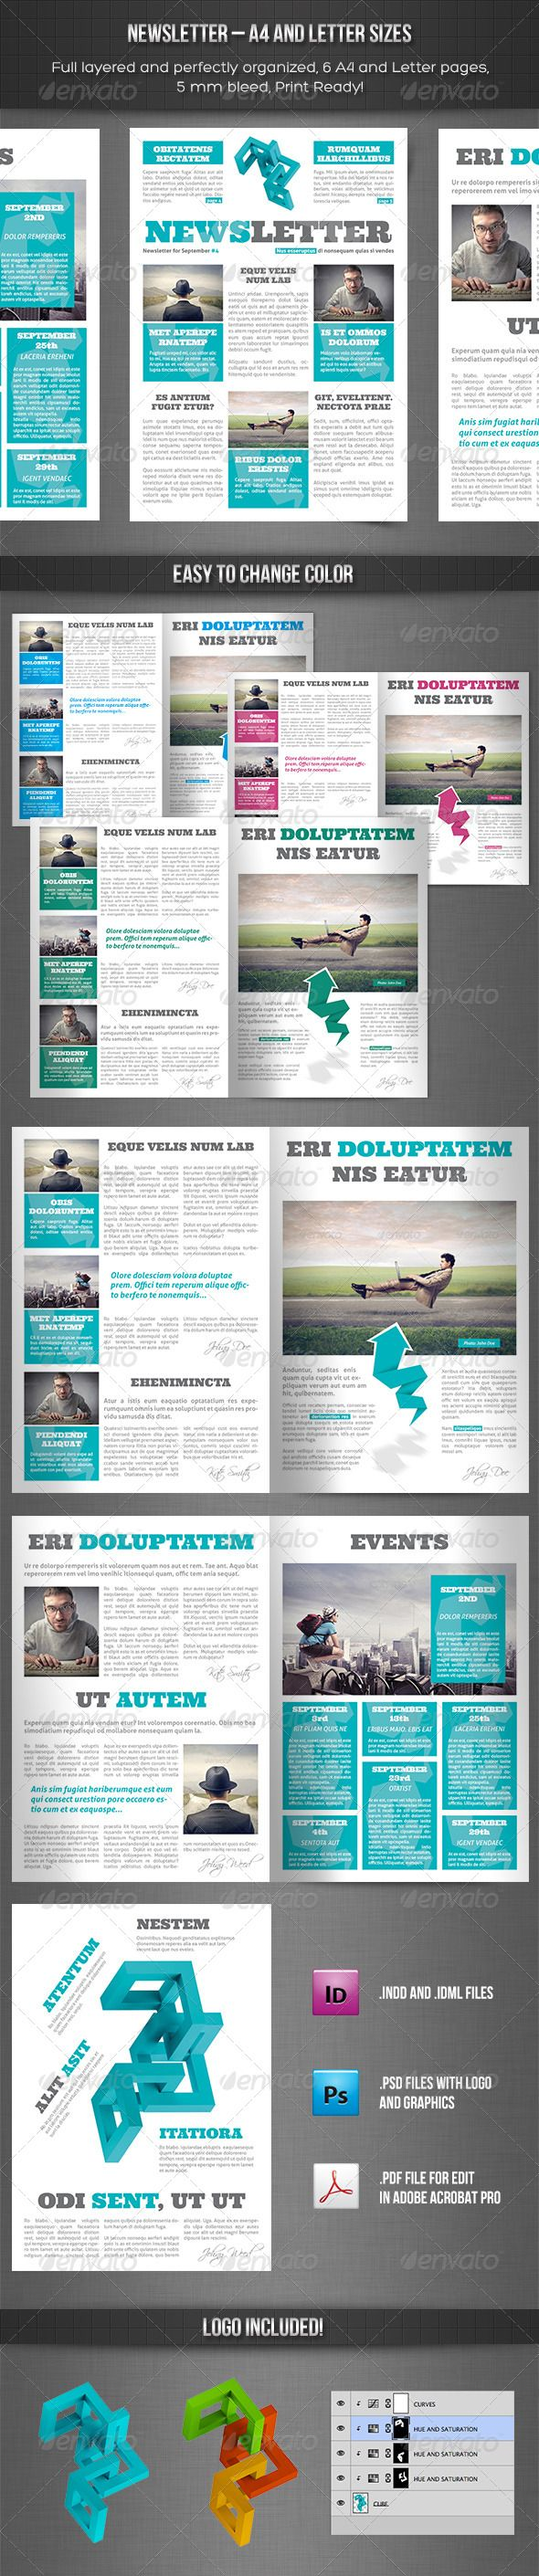 45 best images about newsletter templates on pinterest email newsletter templates public and for Indesign email templates